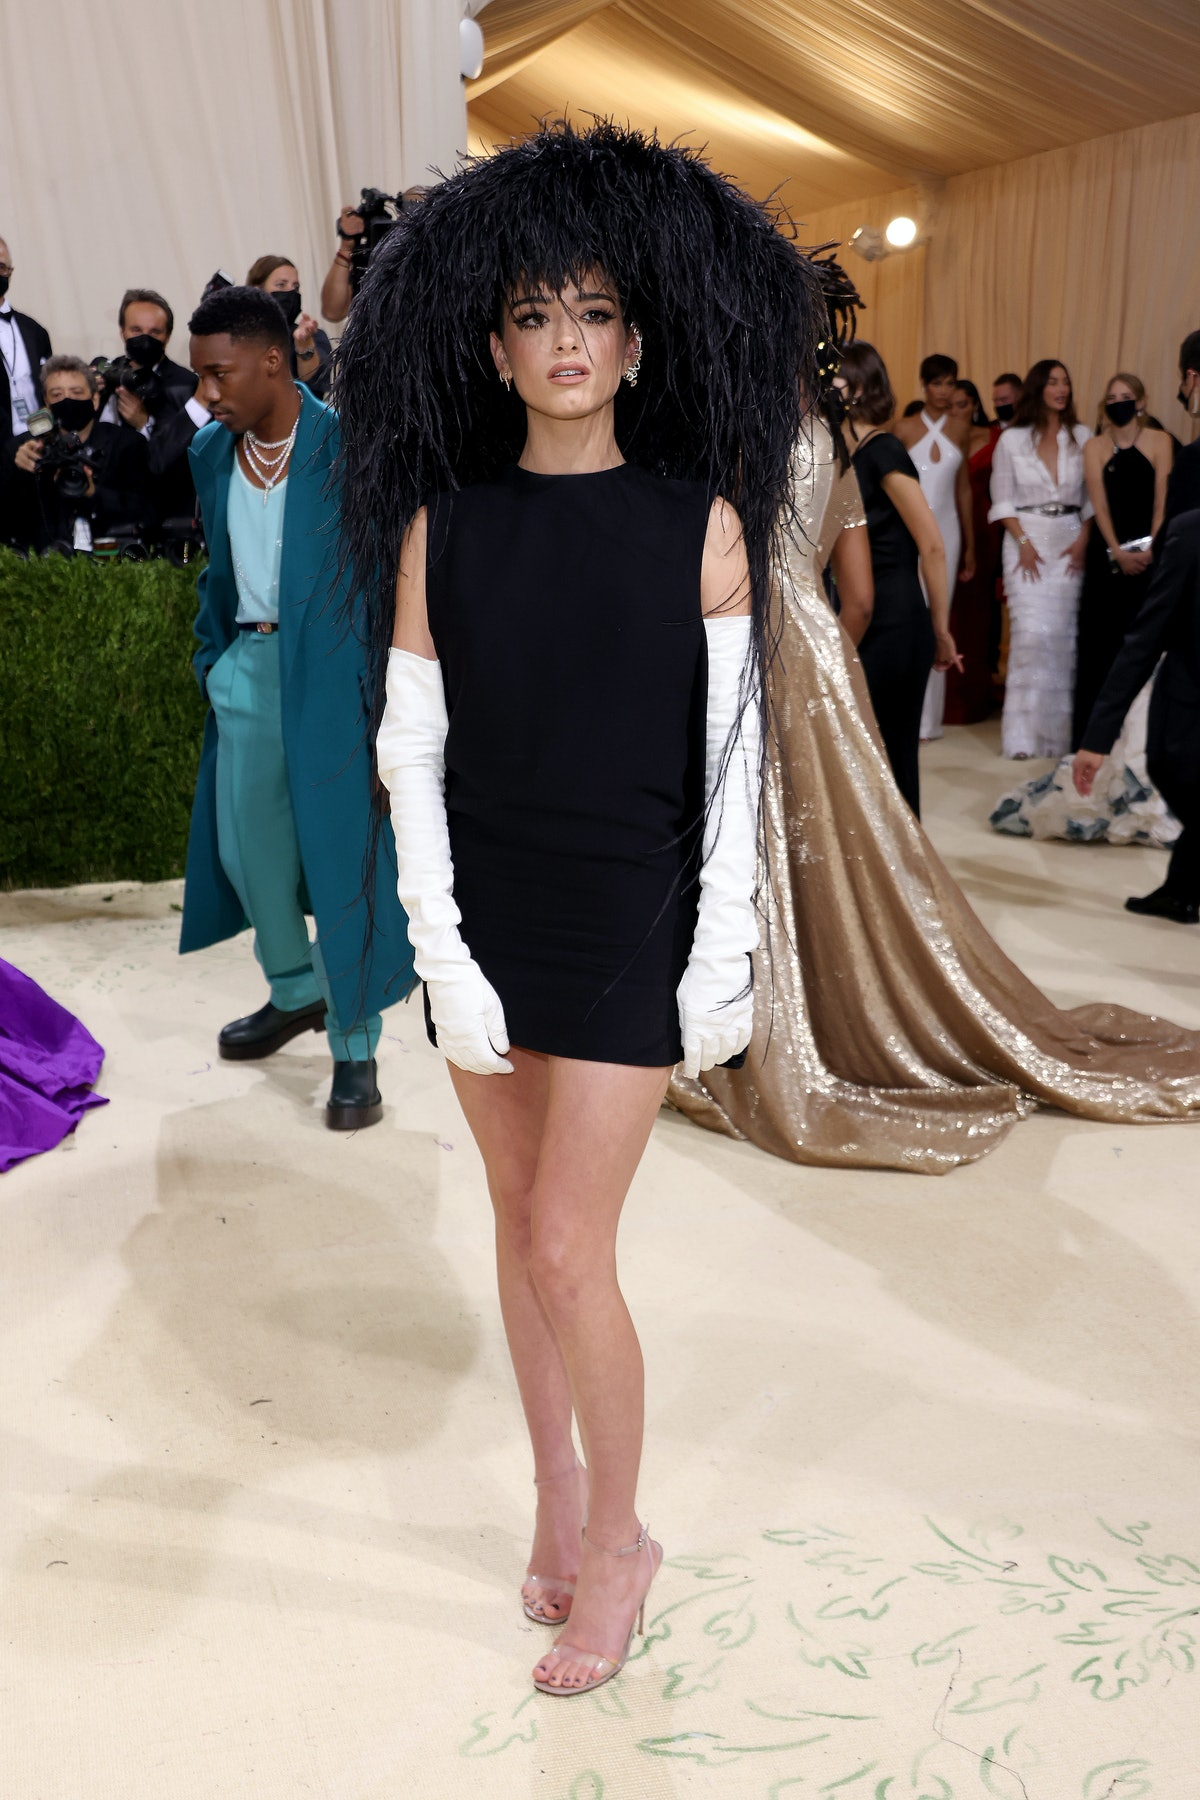 Dixie D'Amelio in her full glam look and Valentino outfit for the 2021 Met Gala.